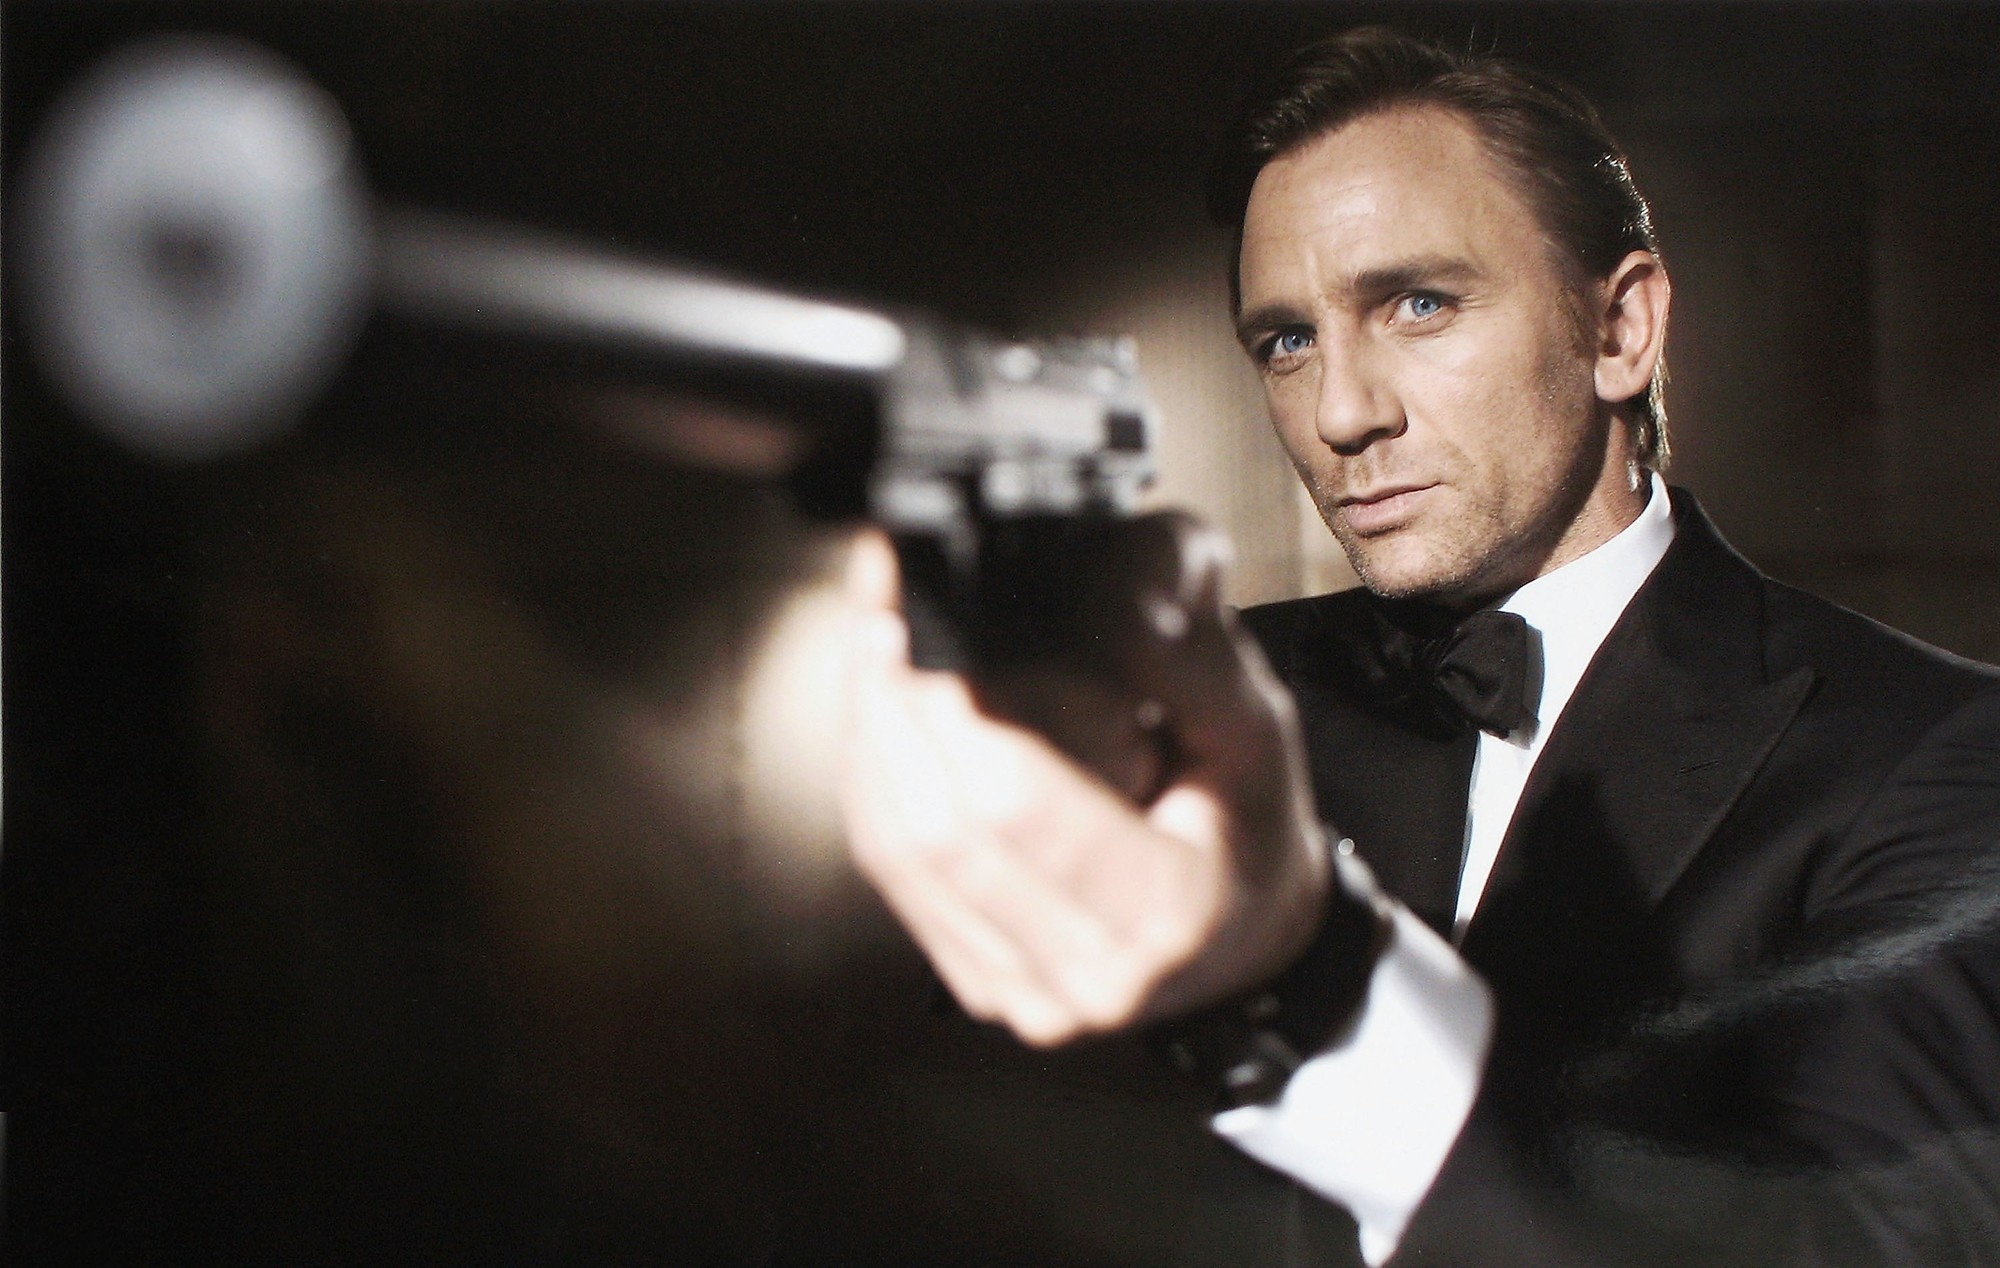 Daniel Craig is done playing James Bond after No Time To Die